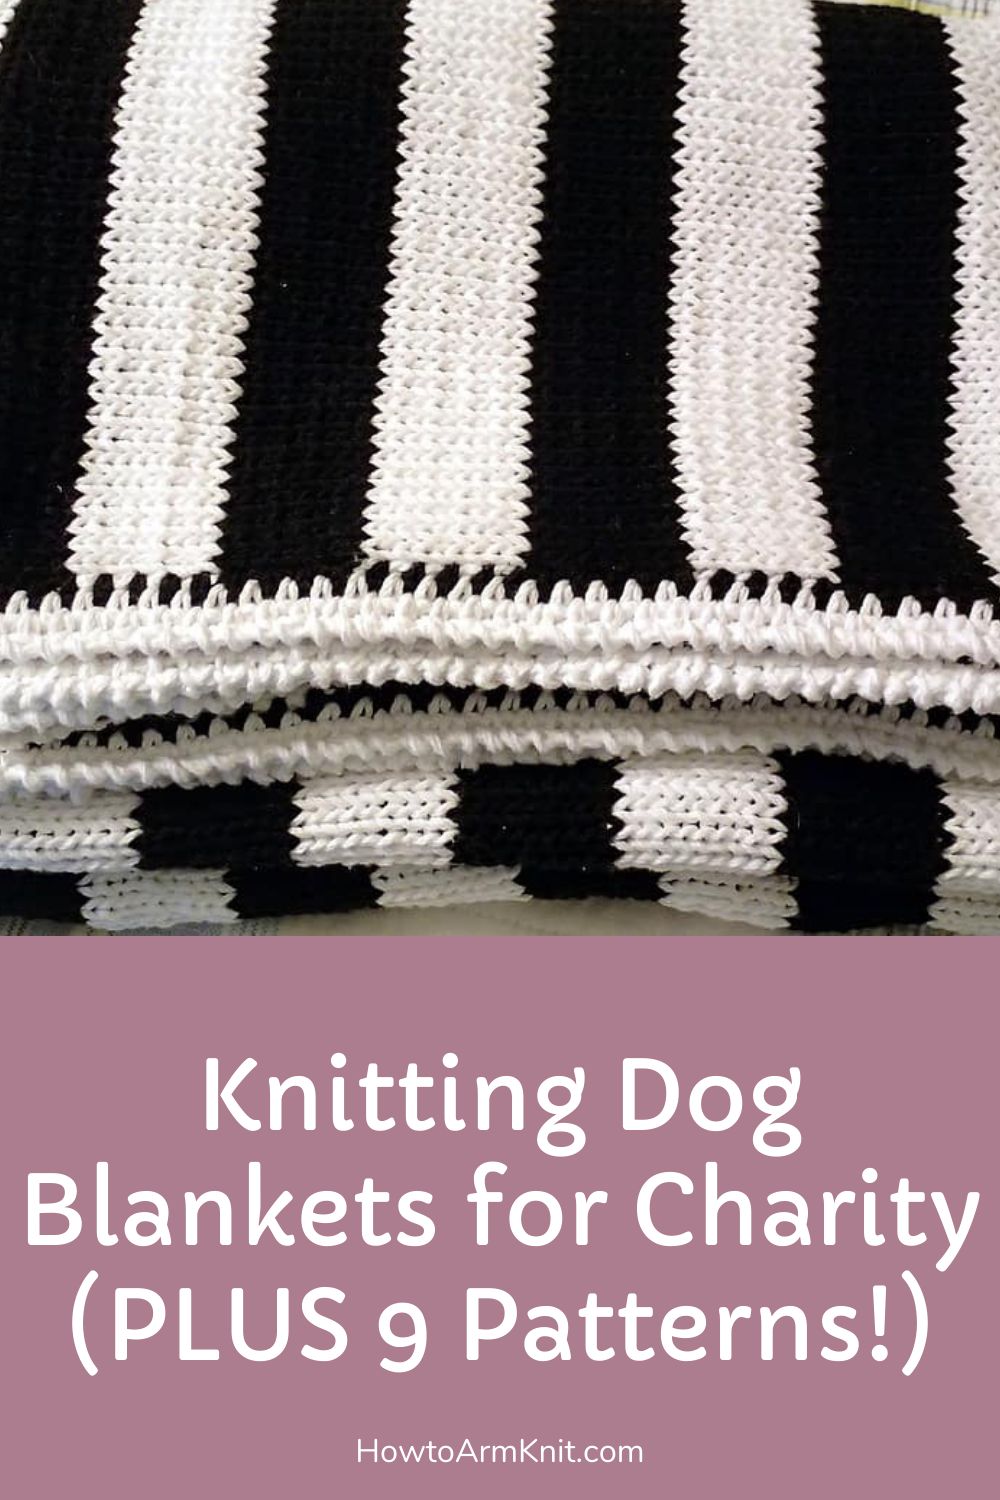 Knitting Dog Blankets For Charity Plus 9 Patterns Happiness Is Handmade In 2020 Dog Blanket Knitting Advanced Knitting